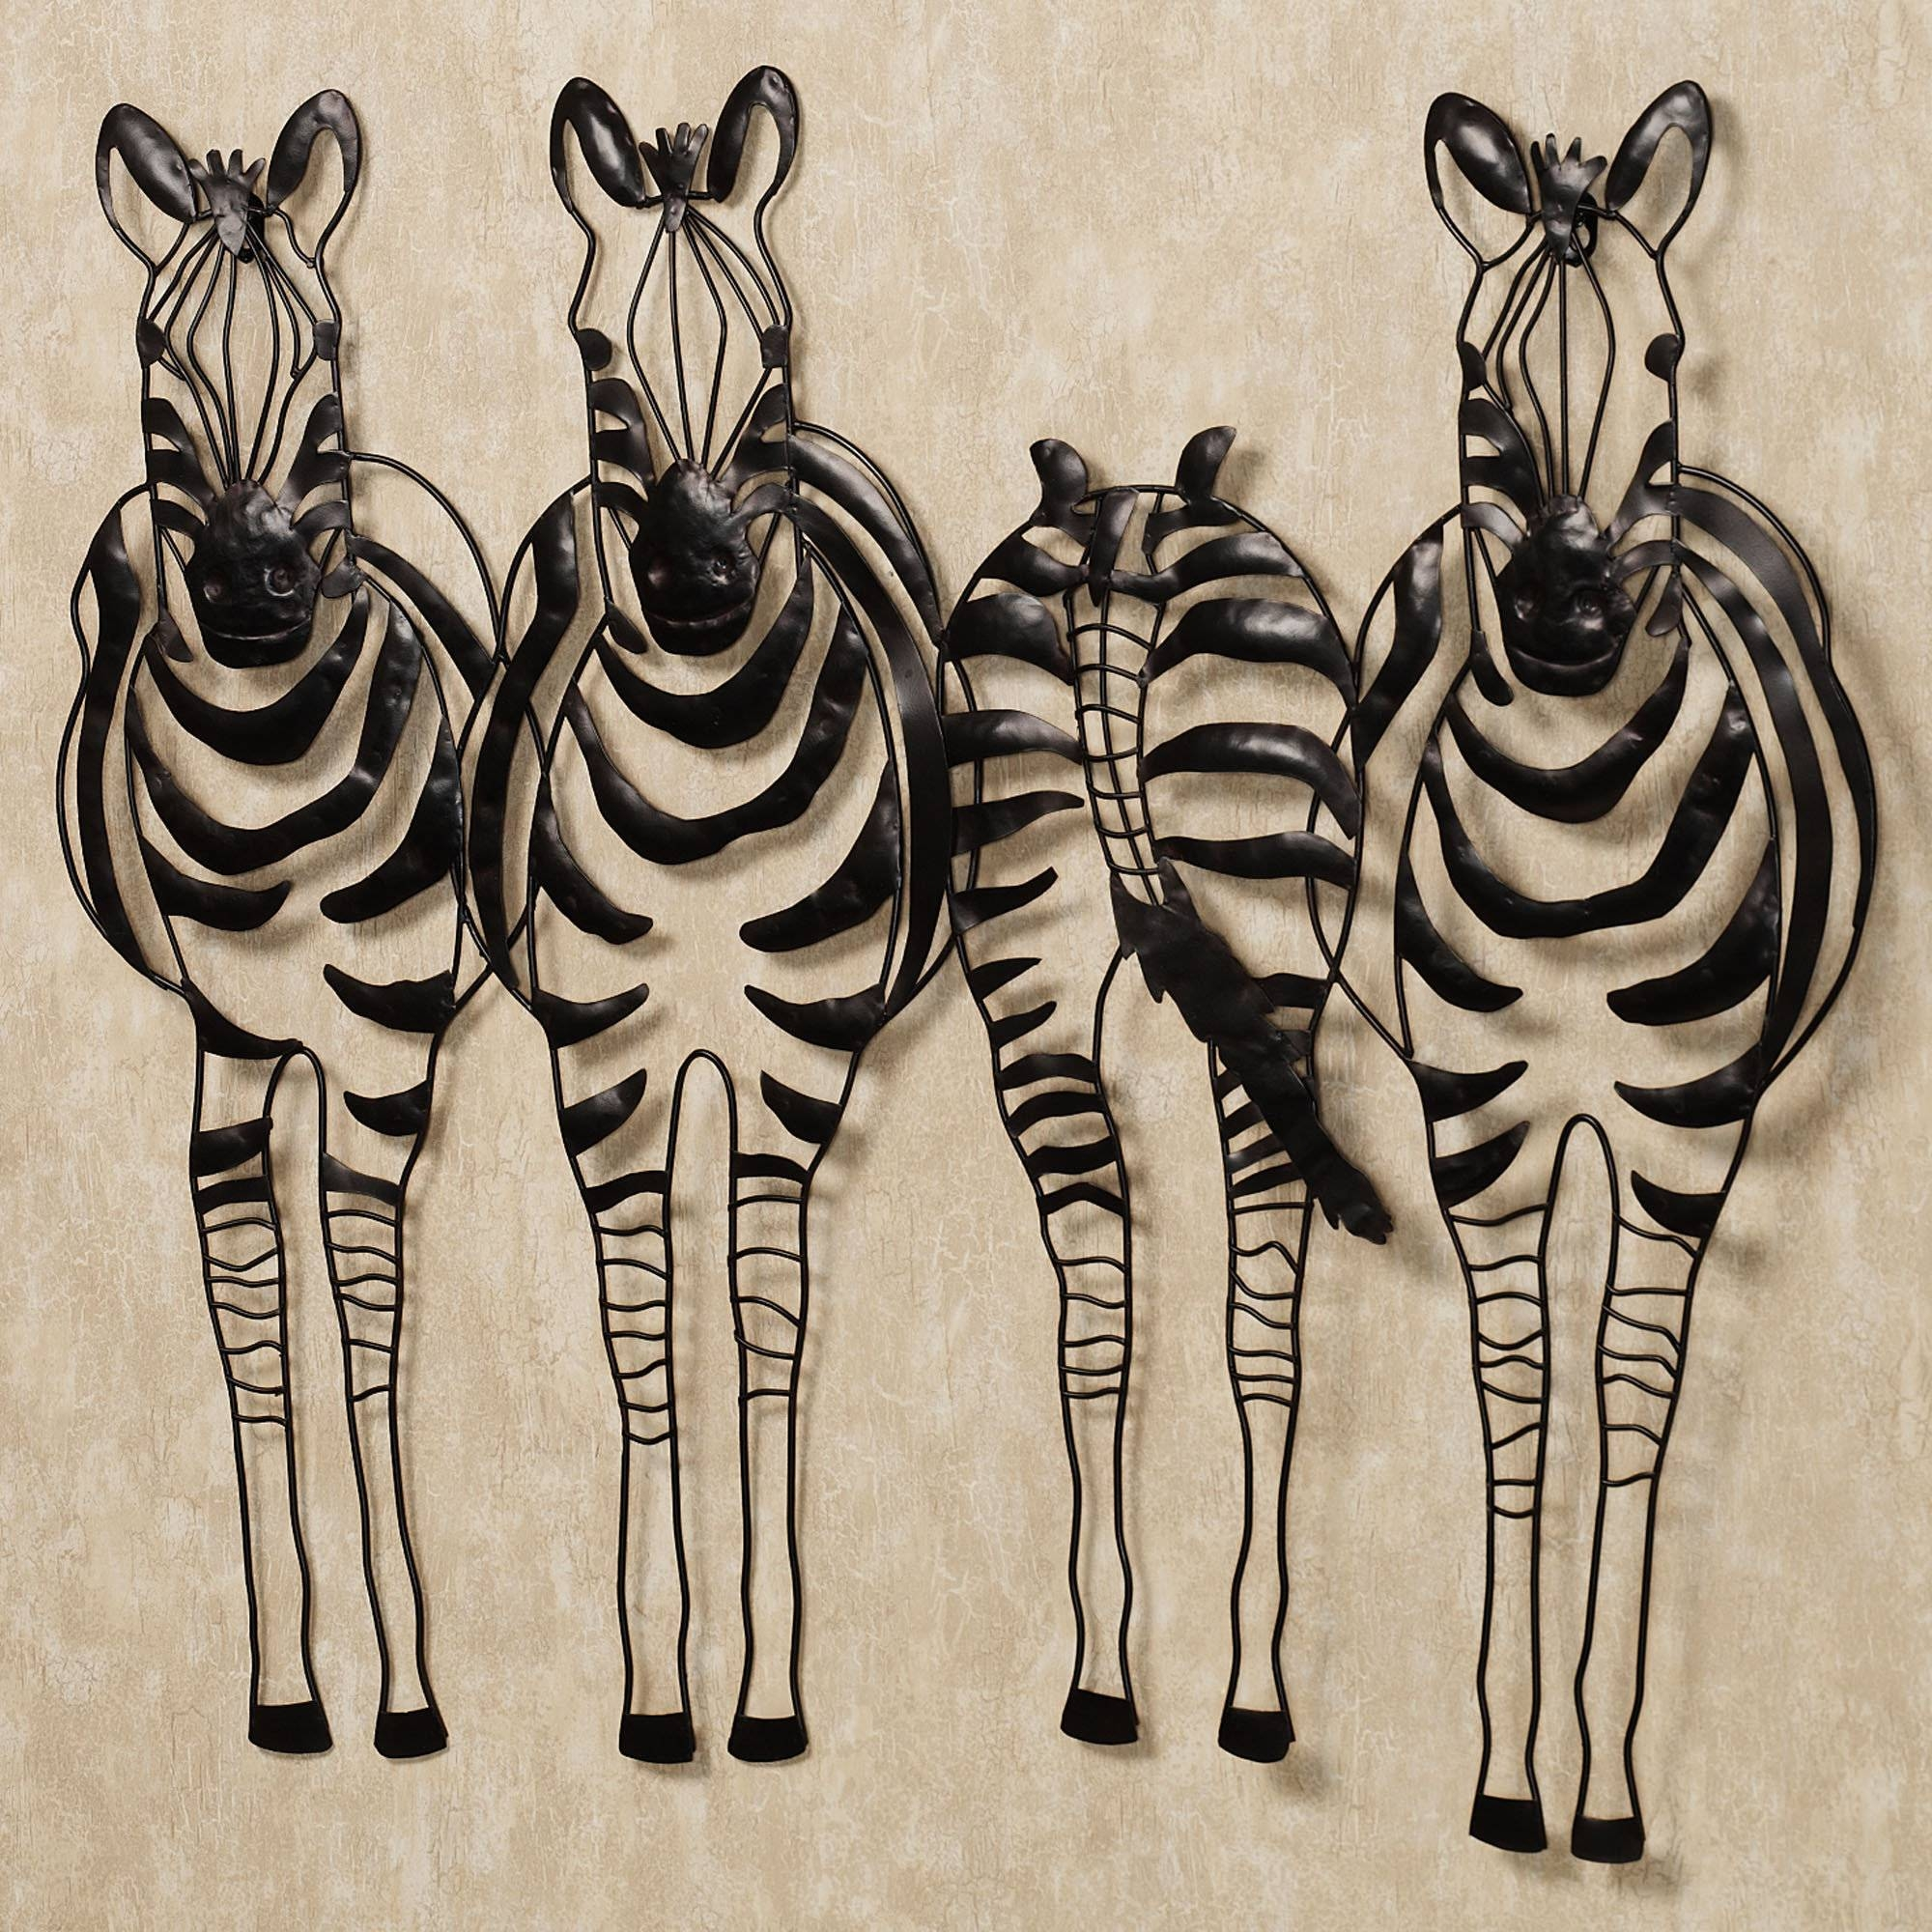 Awesome Zebra Home Decor Metal Wall Sculptures~ Popular Home Intended For Latest Metal Wall Art Decor And Sculptures (View 11 of 20)